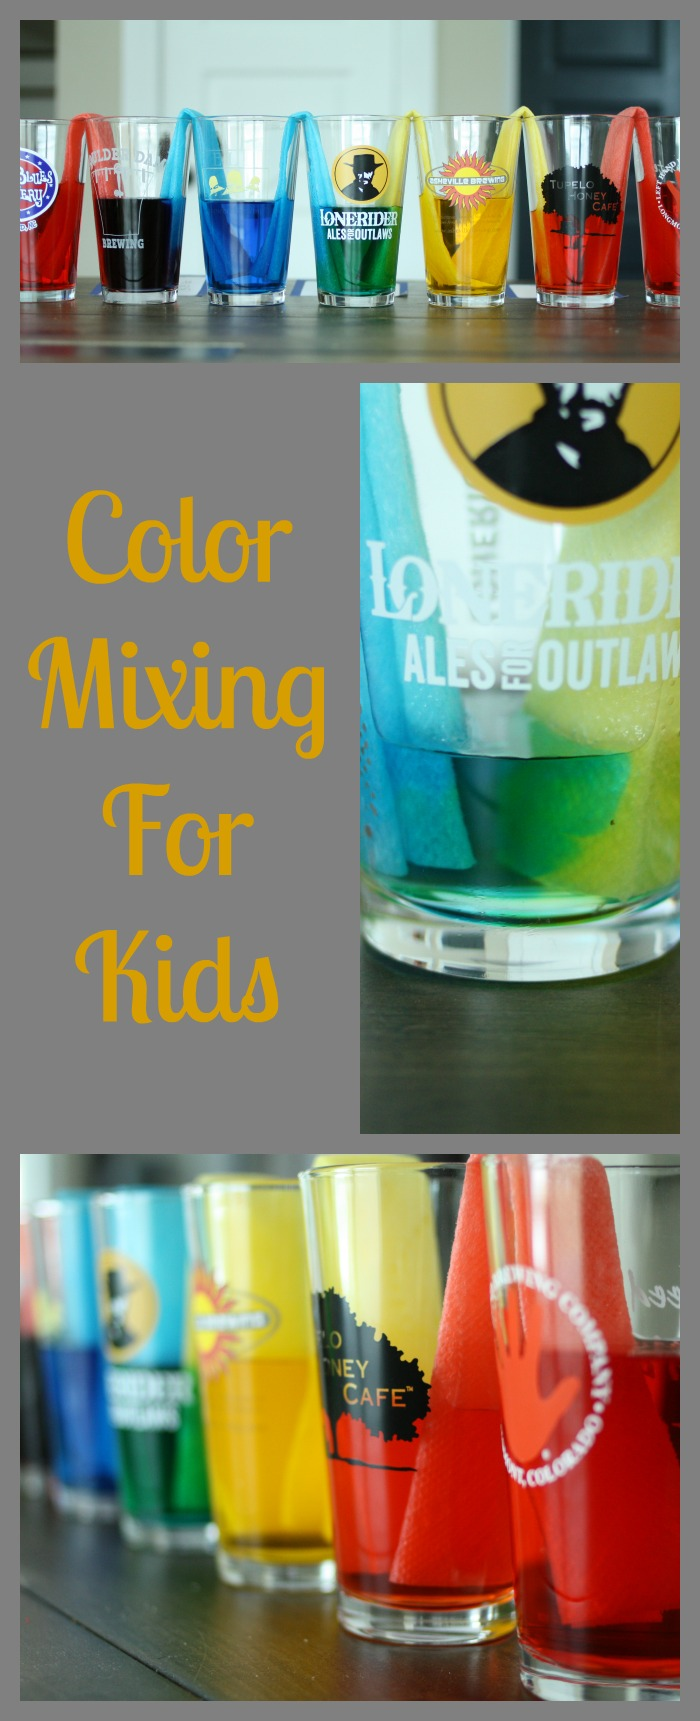 Color mixing activities for kids